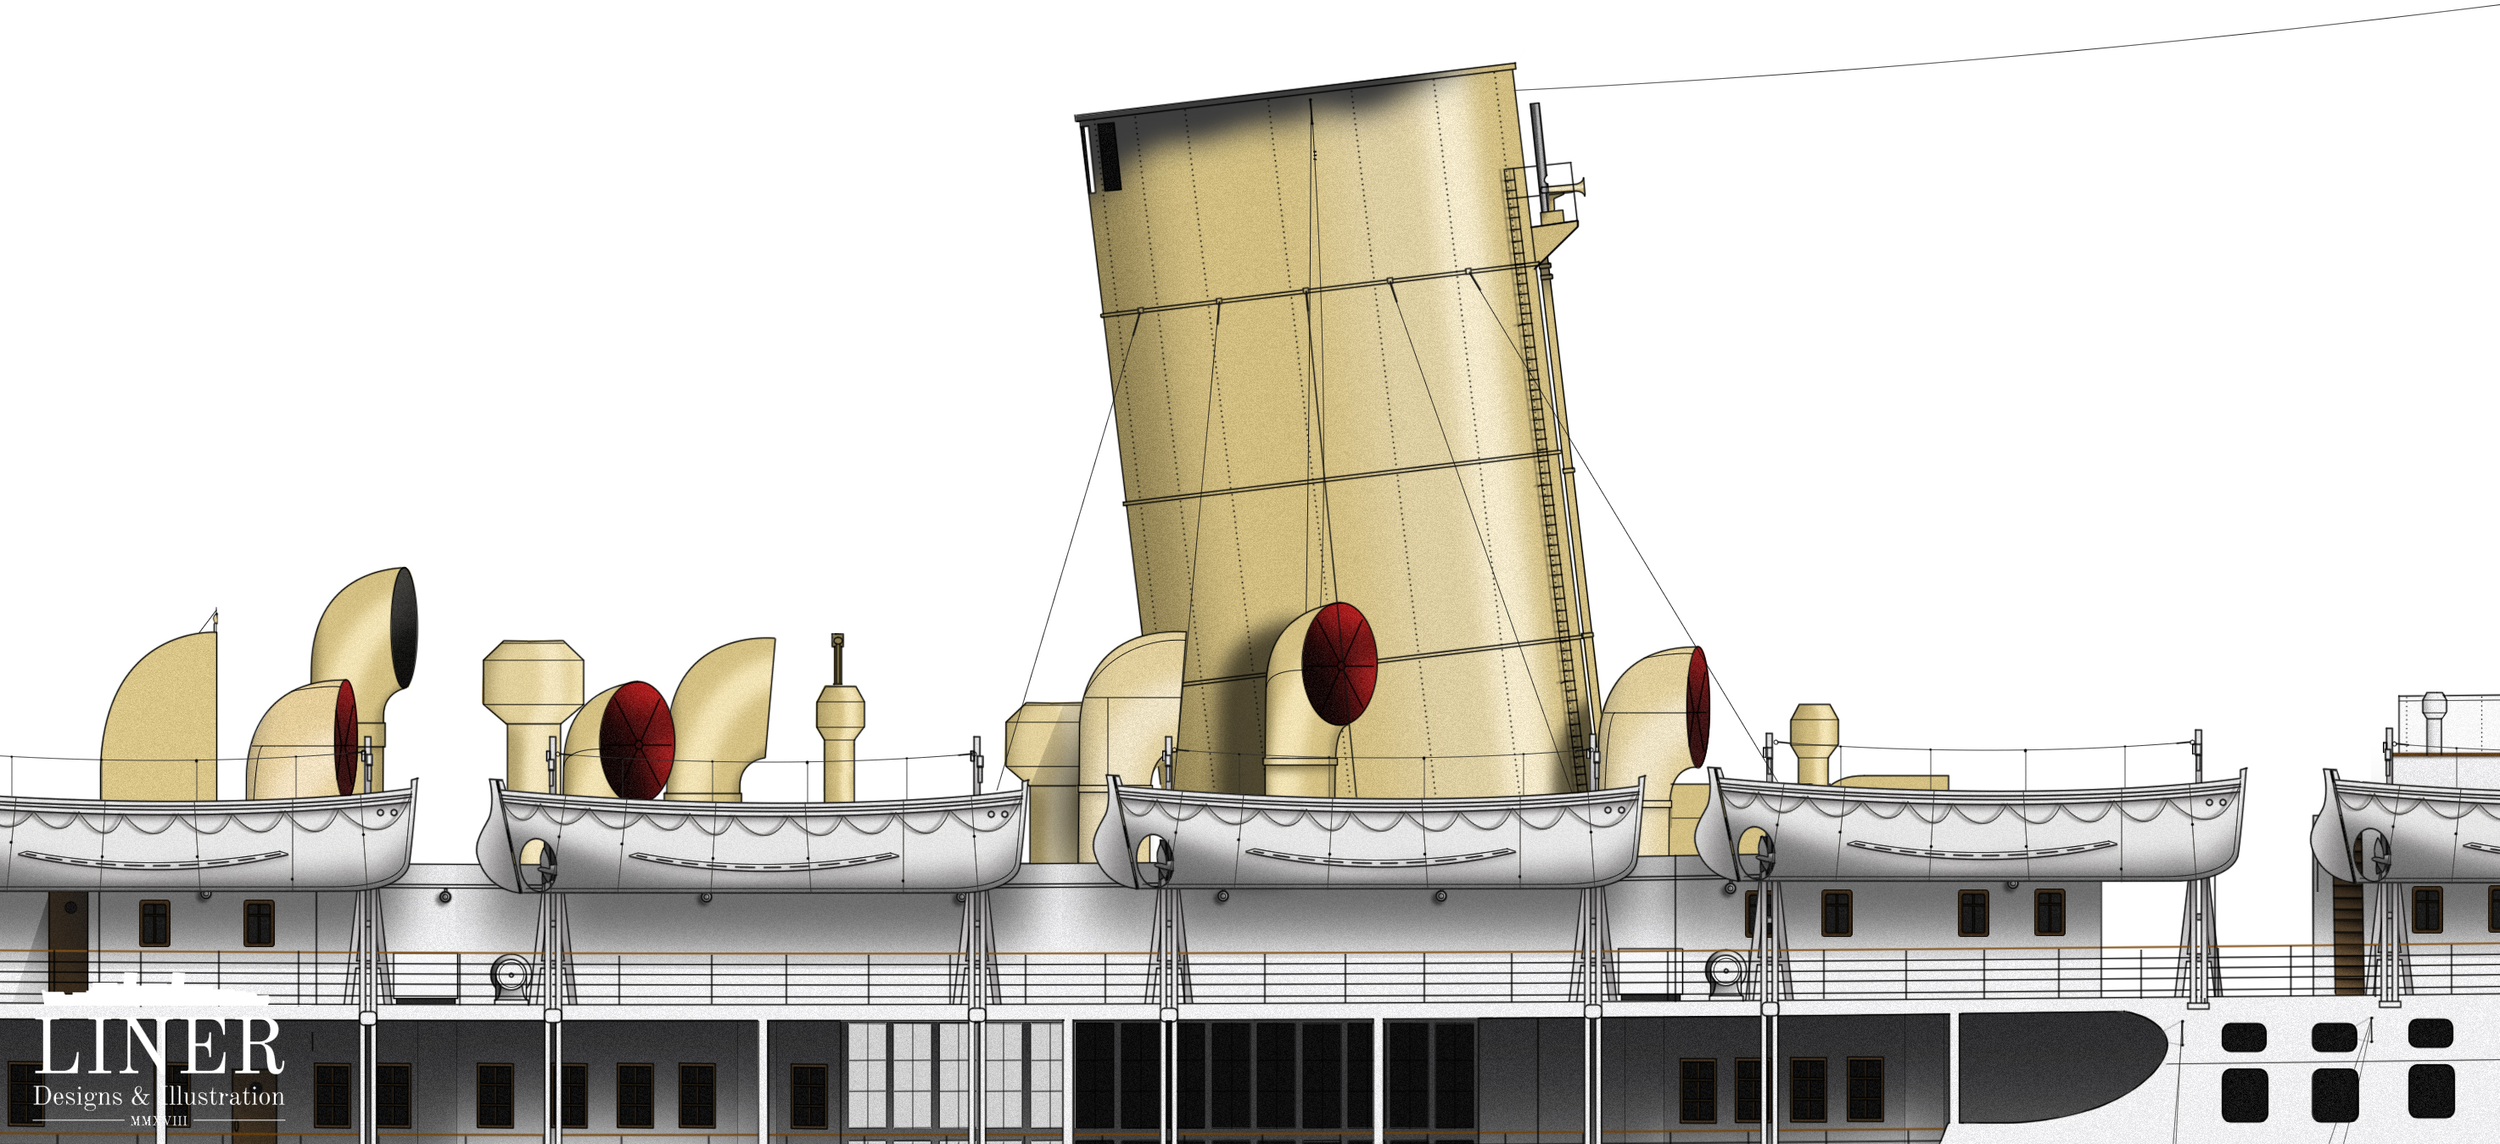 The base of Strathnaver's single funnel. She was originally launched with three shorter ones but in an attempt to modernize, P&O replaced these with one taller type.